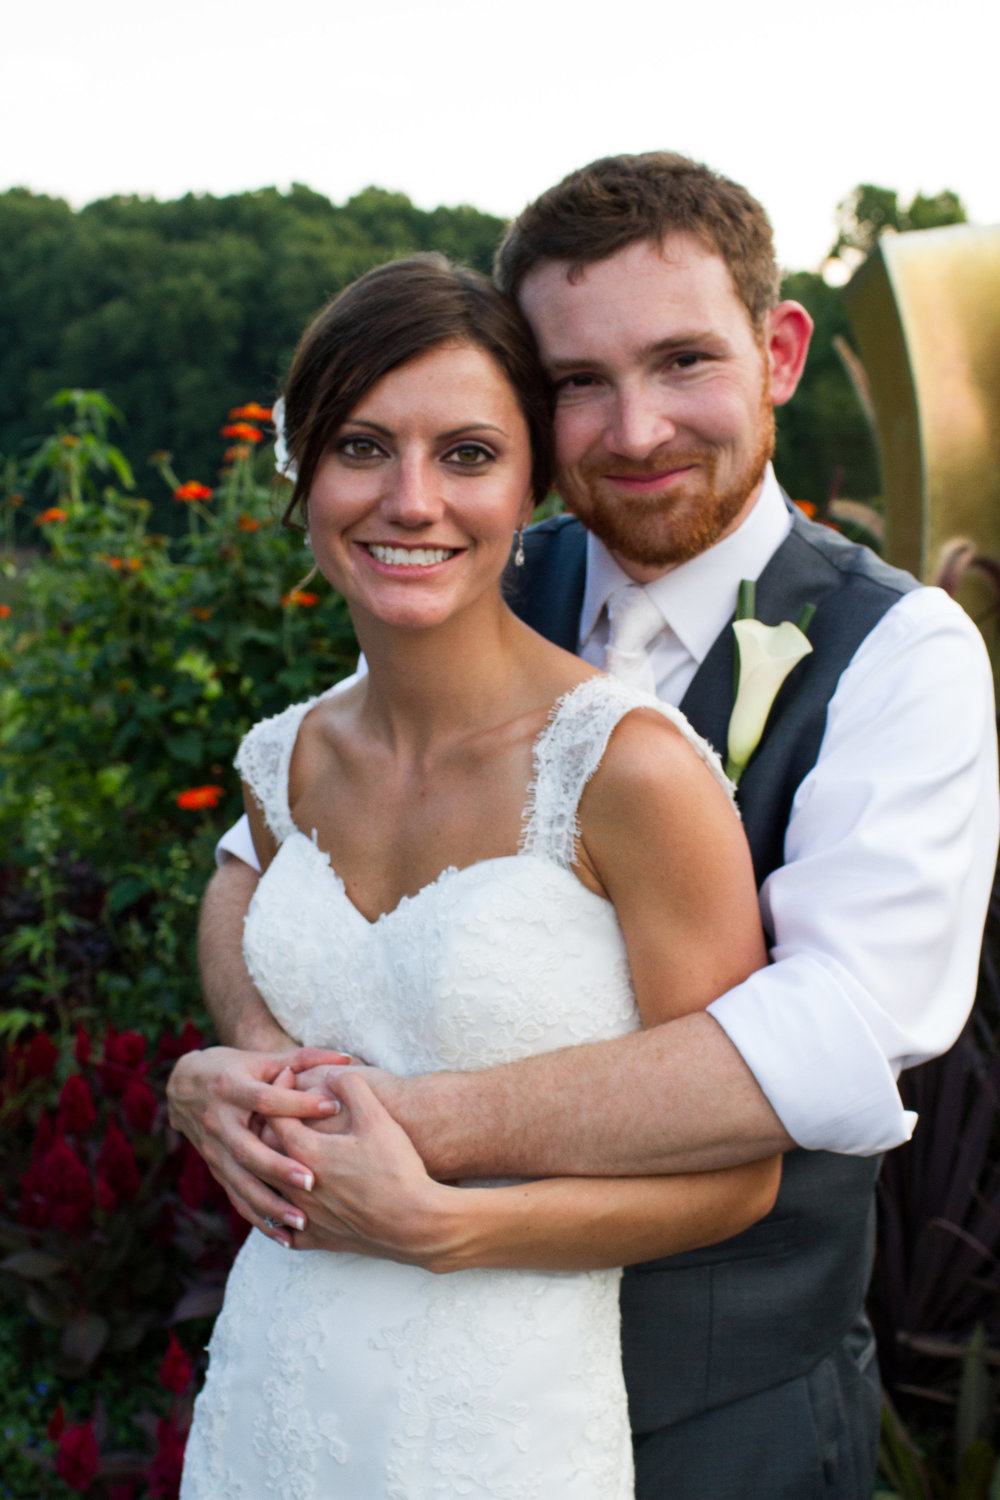 Bridal portraits Meadowlark Botanical Garden Wedding Vienna wedding photographer